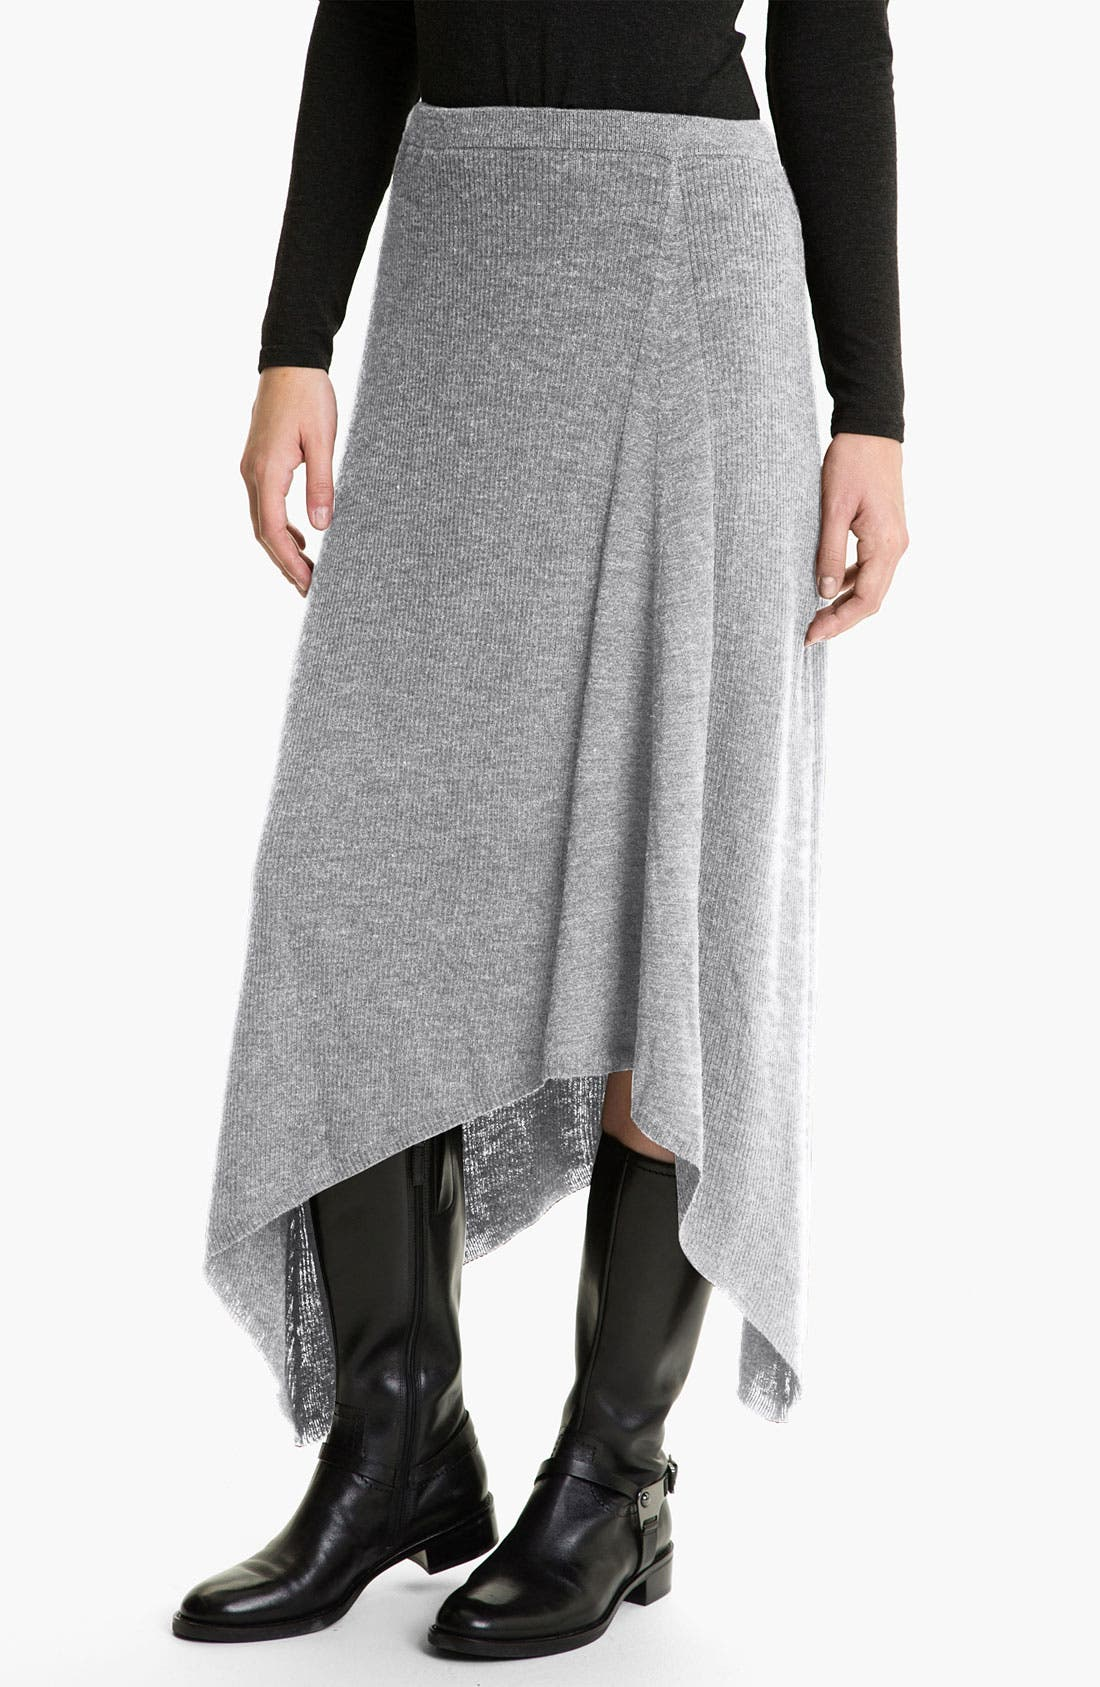 Alternate Image 1 Selected - Eileen Fisher Merino Jersey Rib Knit Skirt  (Online Exclusive)